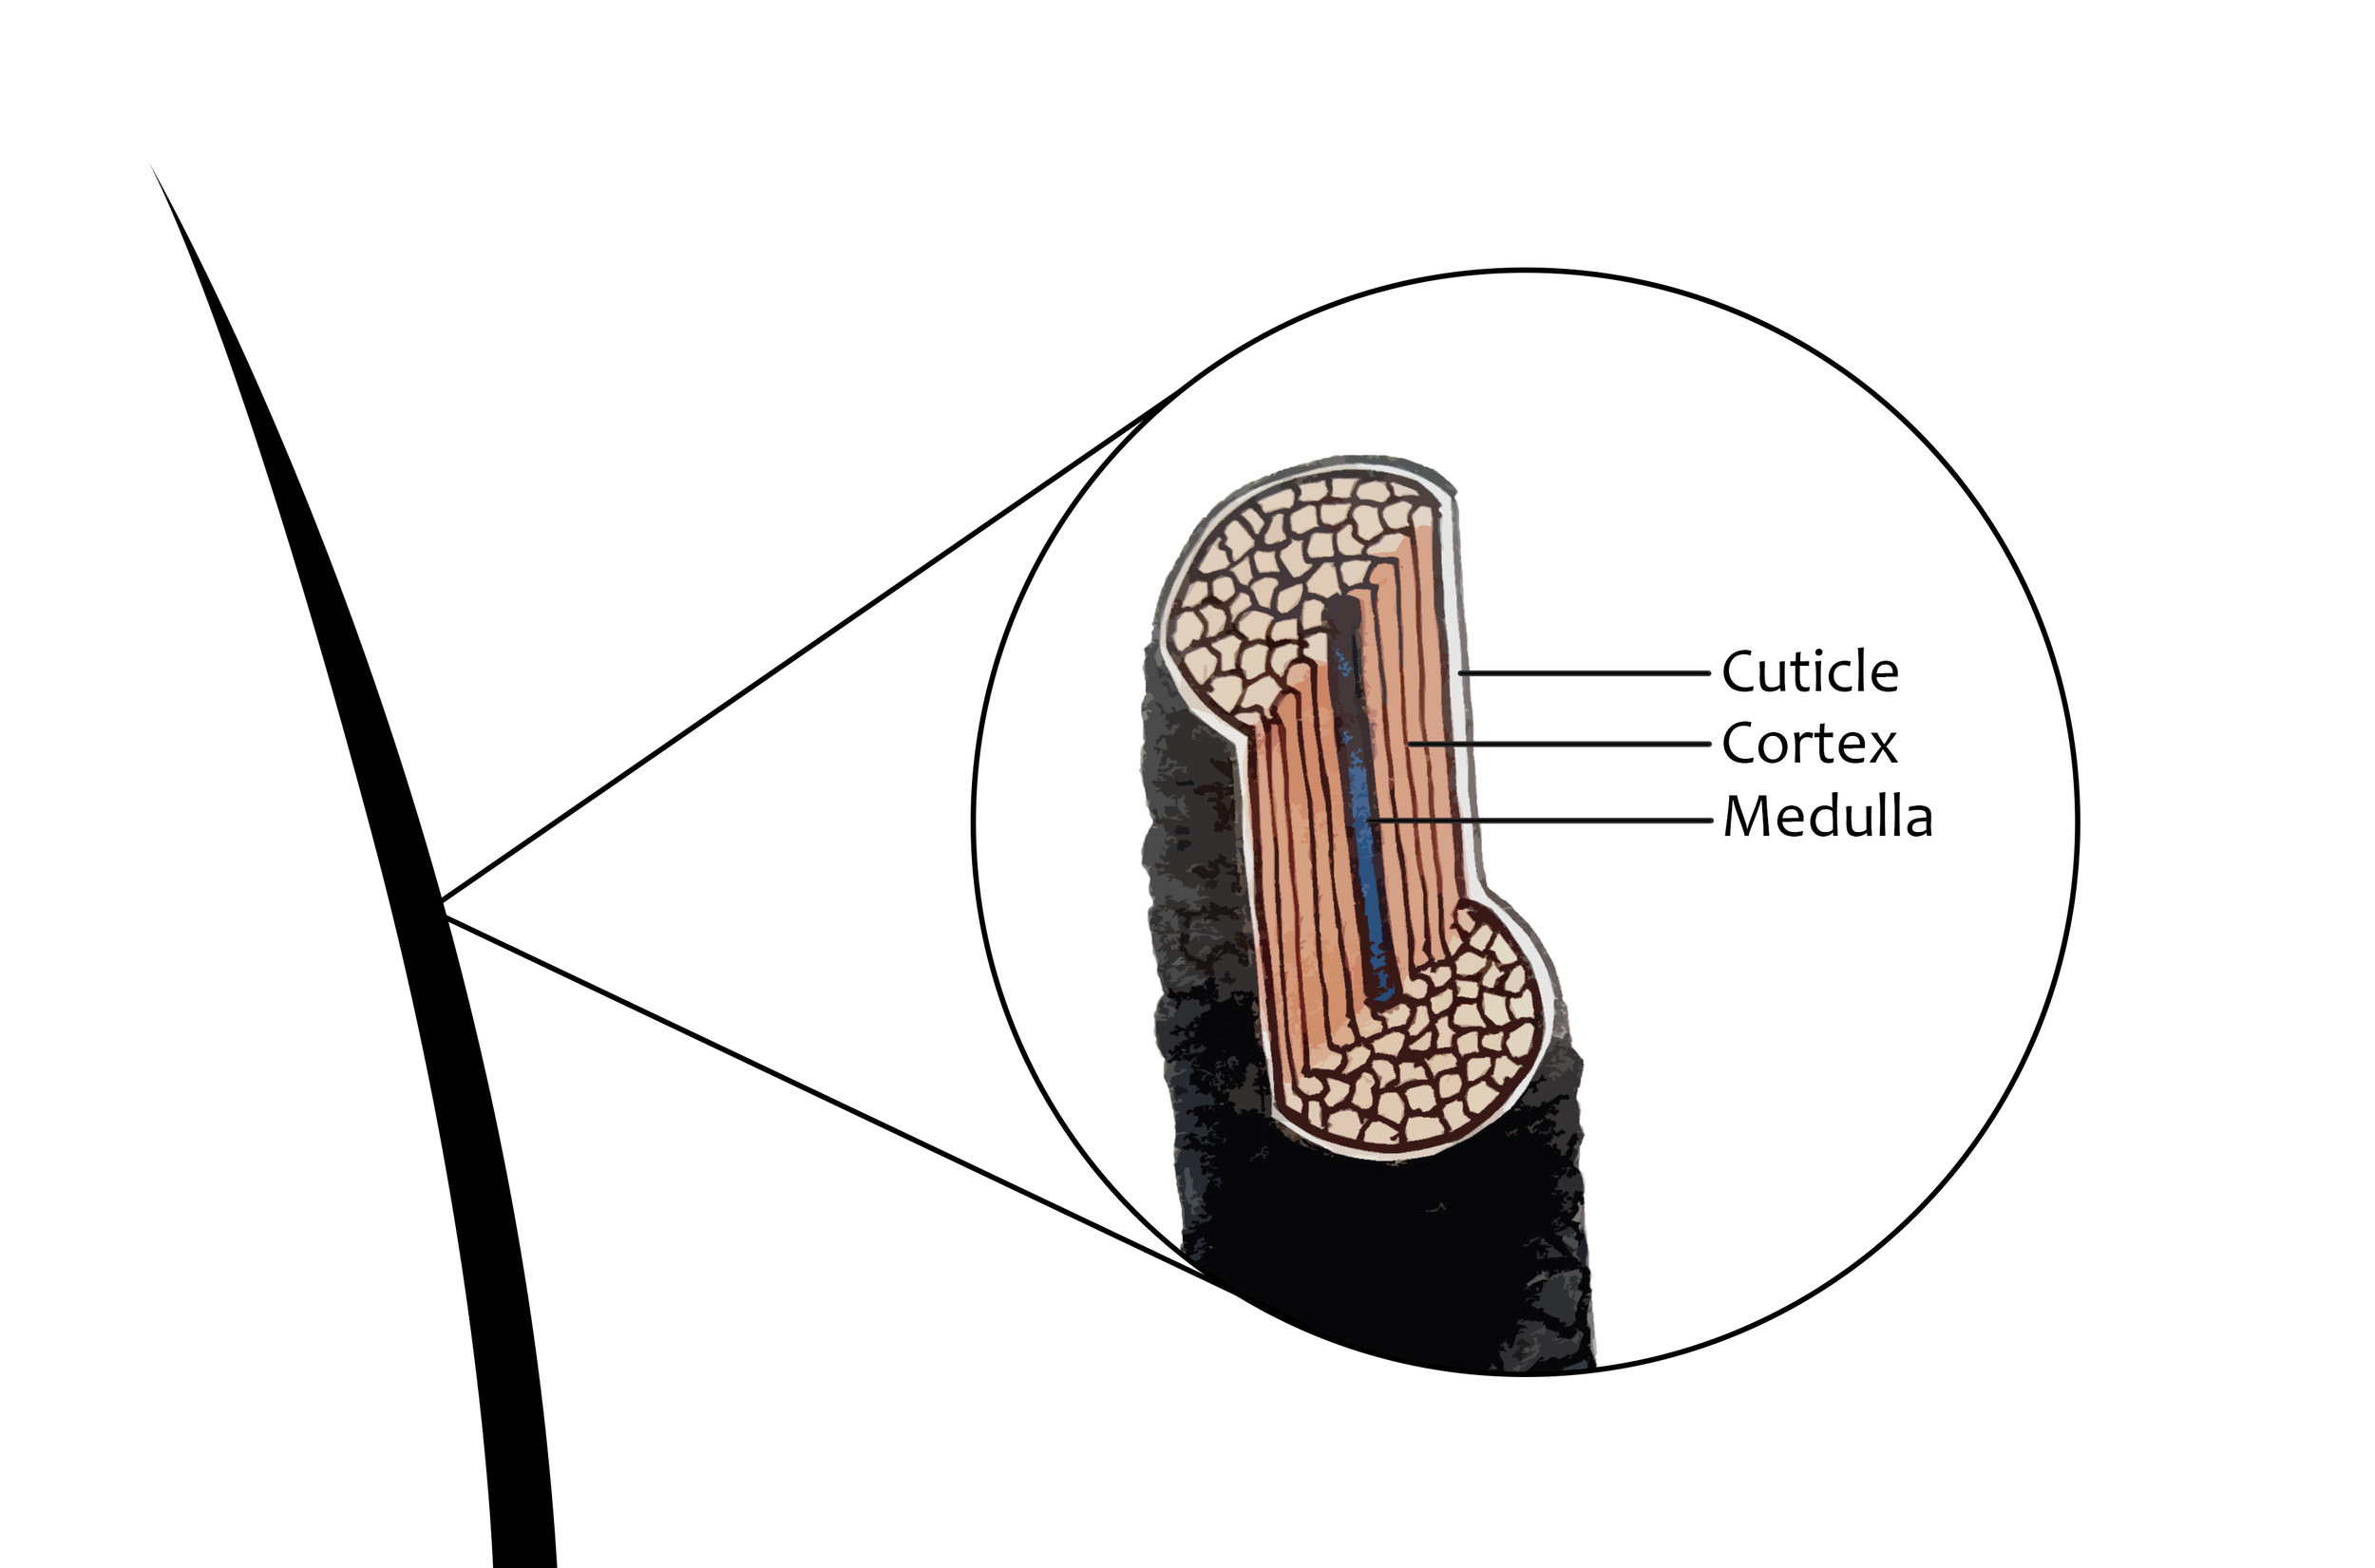 Figure: The structure of our hair